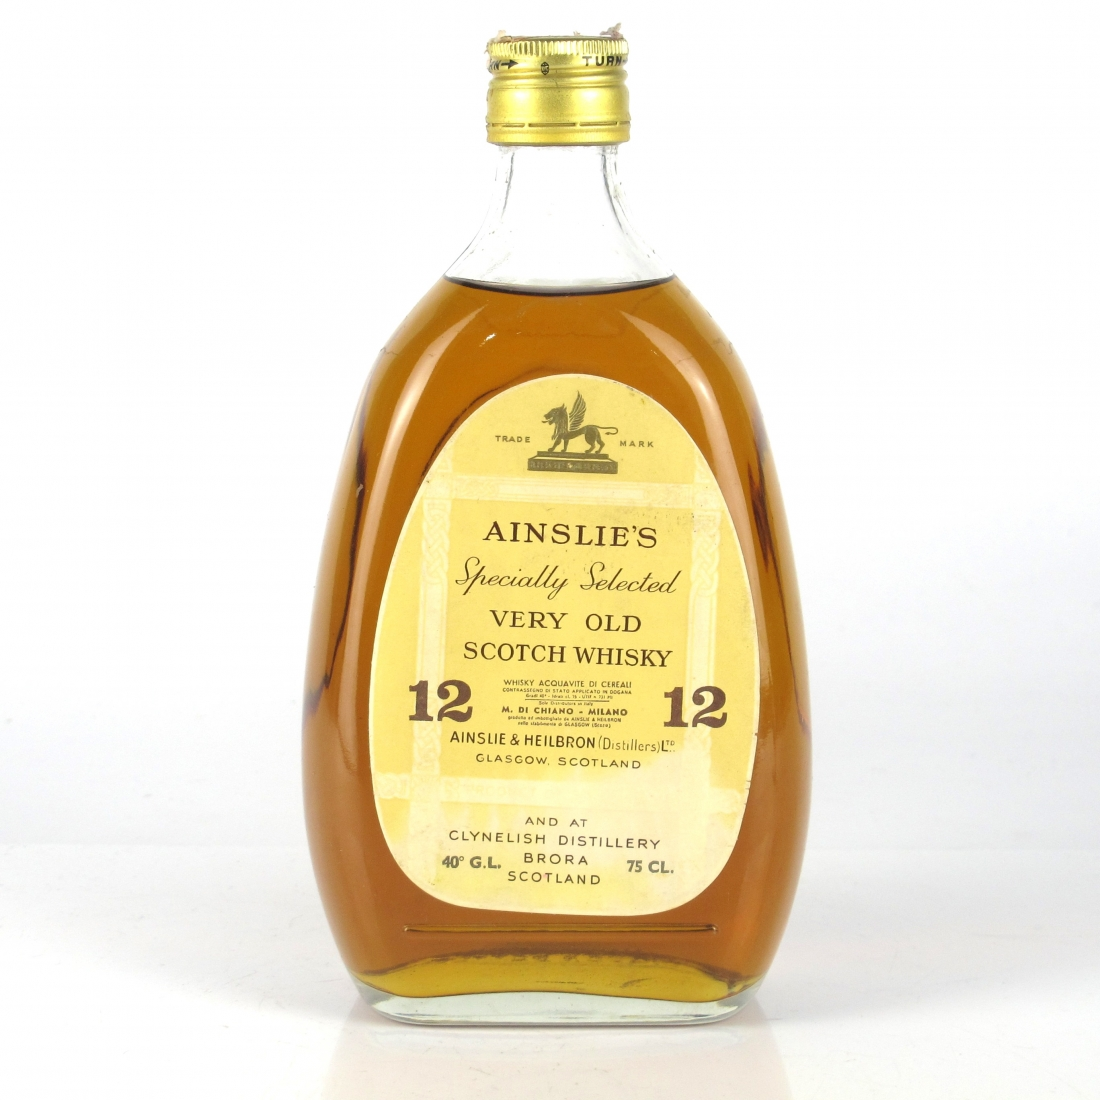 Ainslie's 12 Year Old Specially Selected 1970s / Di Chiano Import